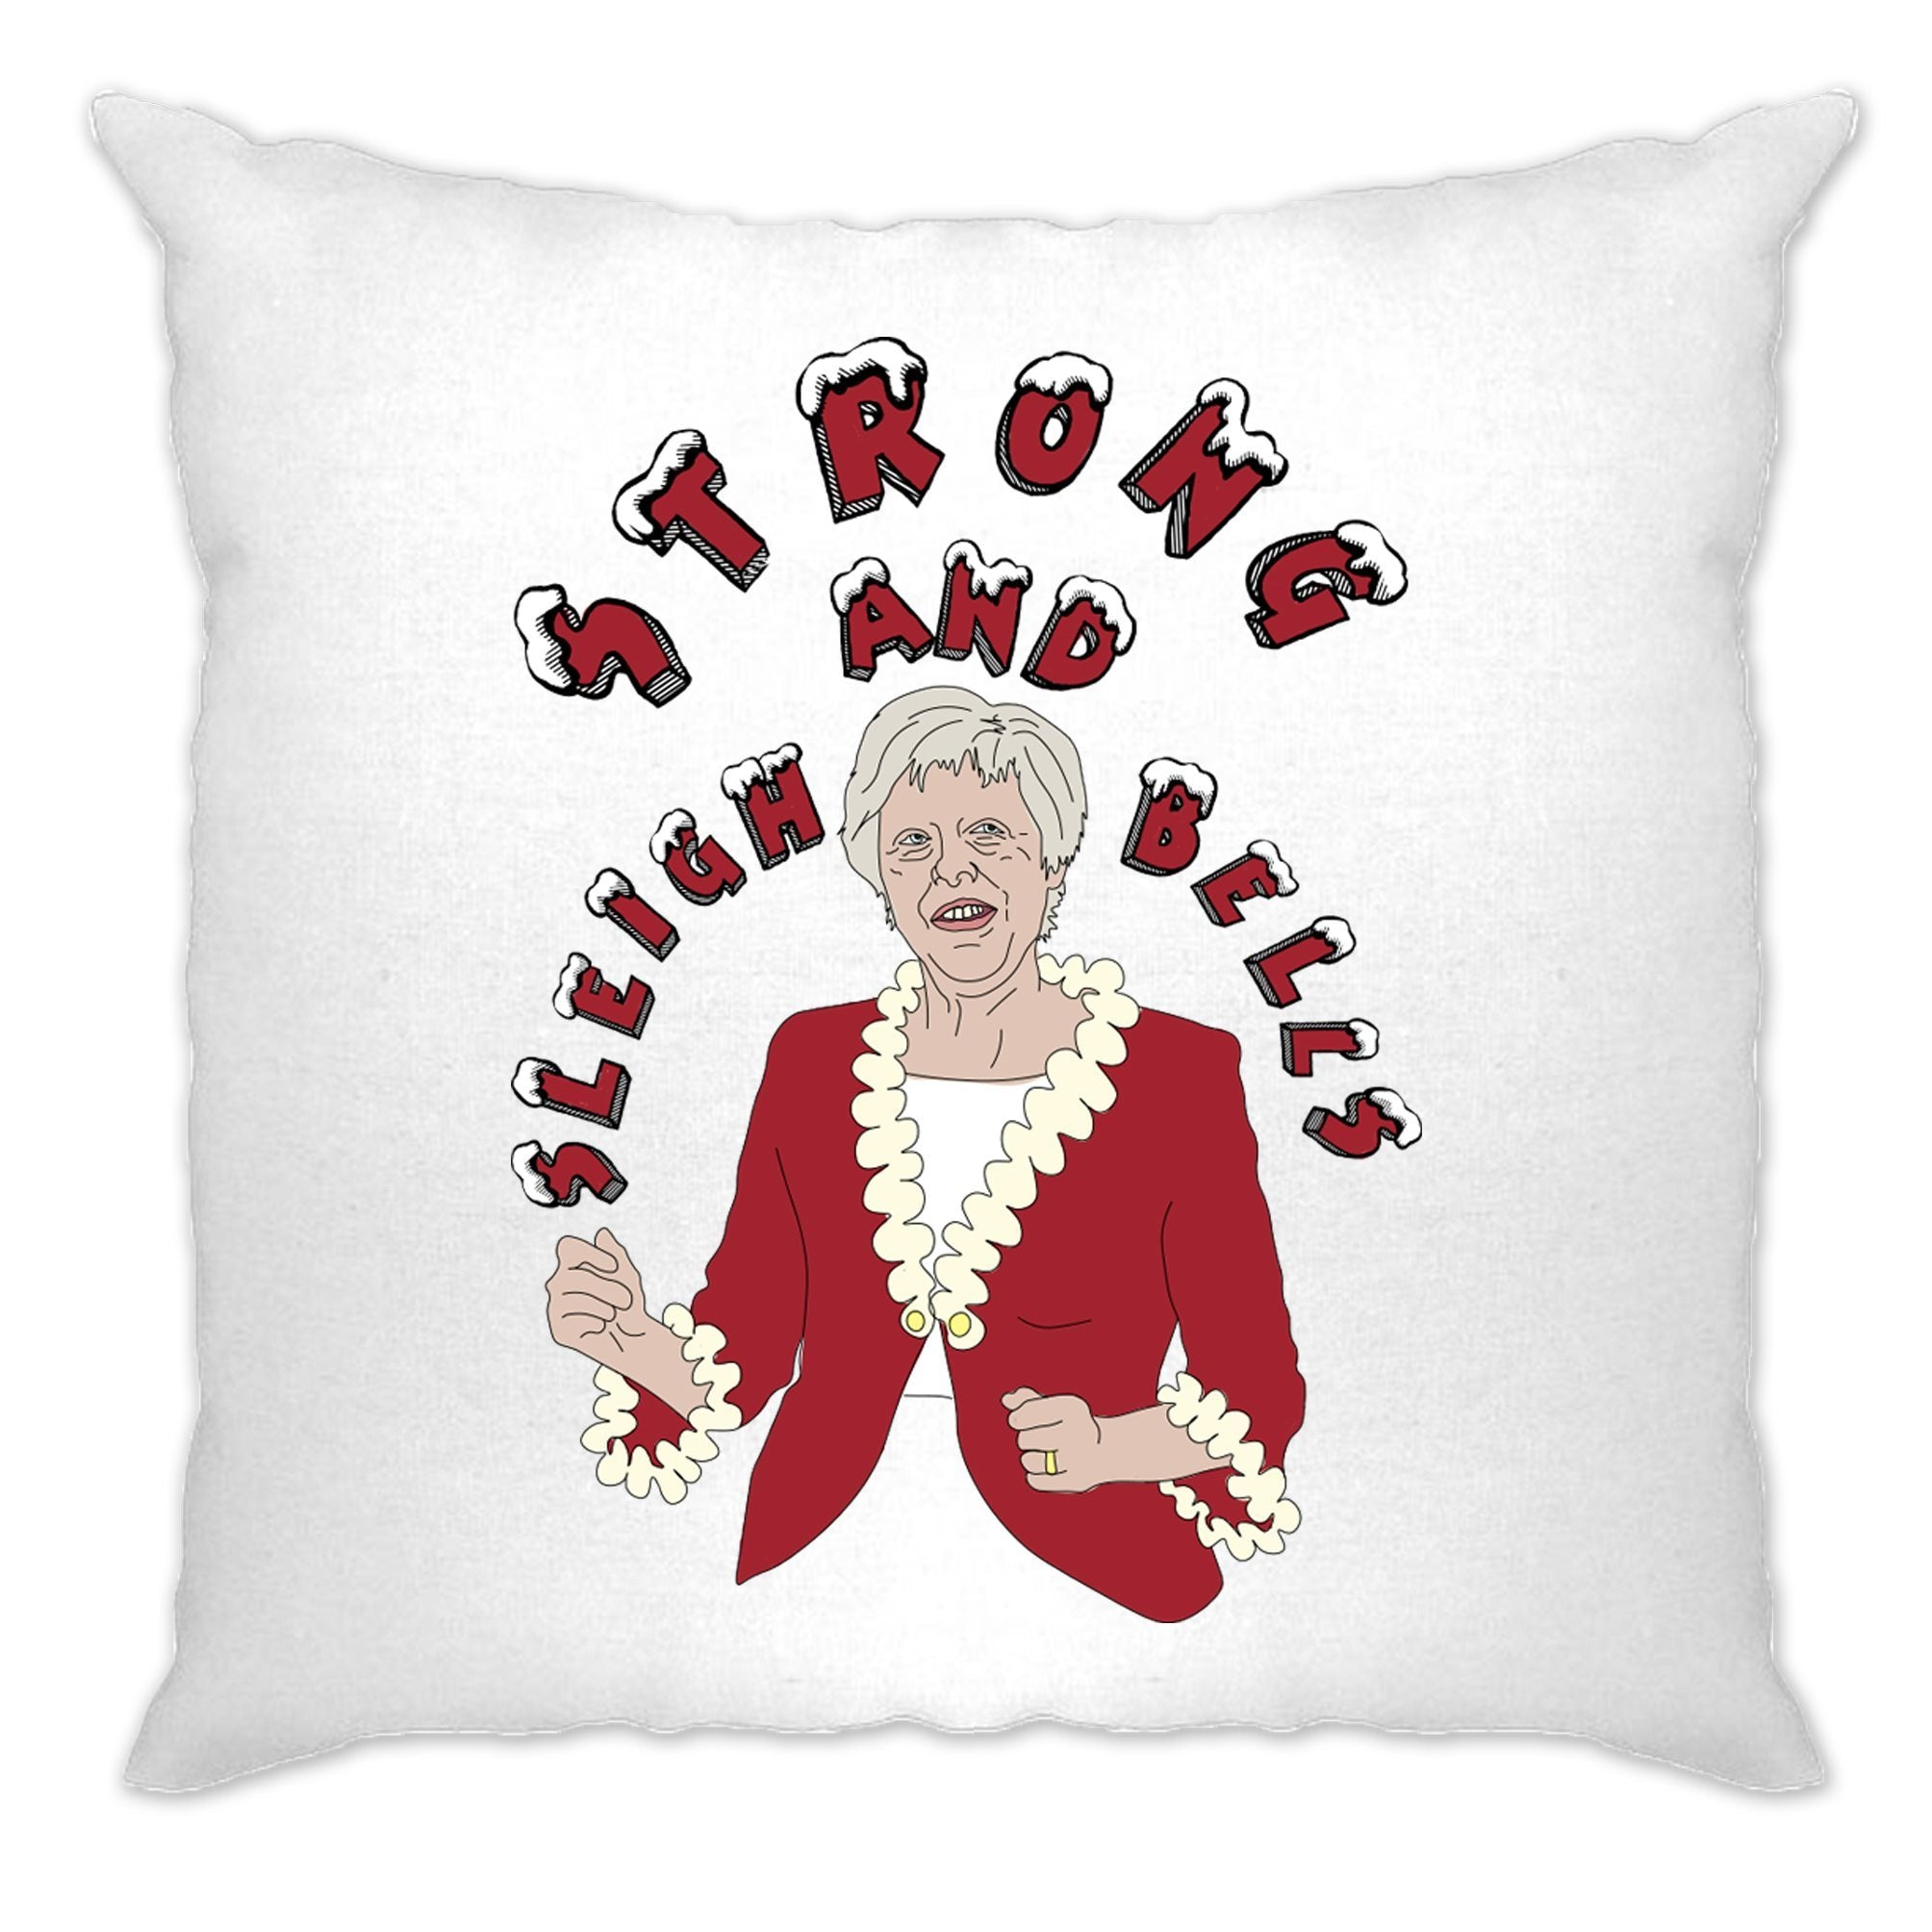 Novelty Xmas Cushion Cover Festive Theresa May Joke